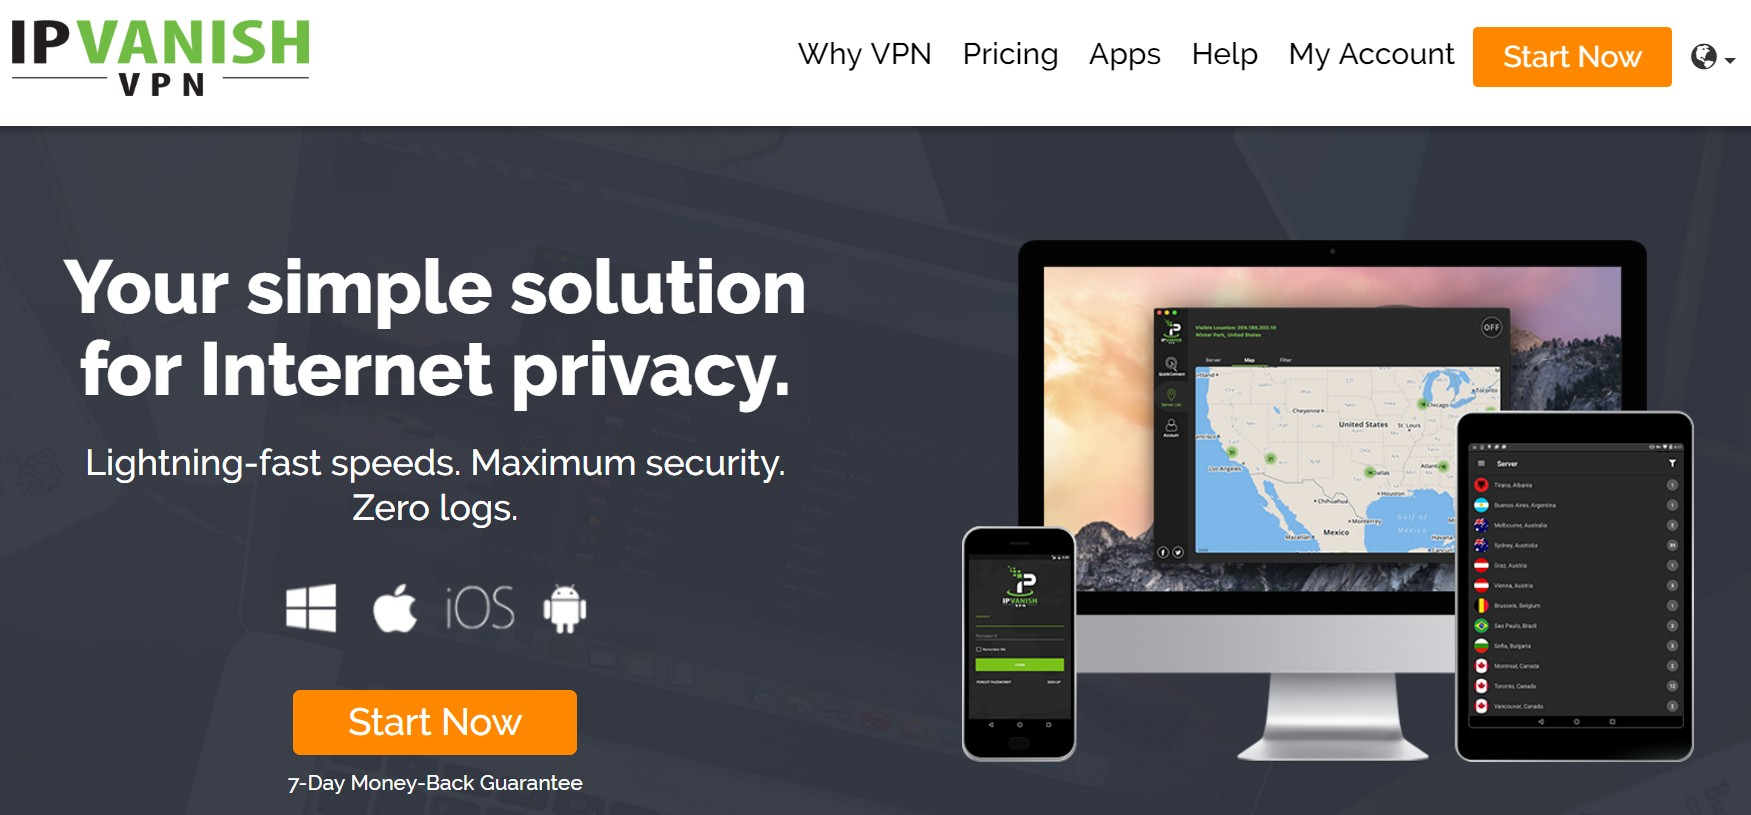 IP Vanish VPN Home Page - Best VPN for Popcorn Time